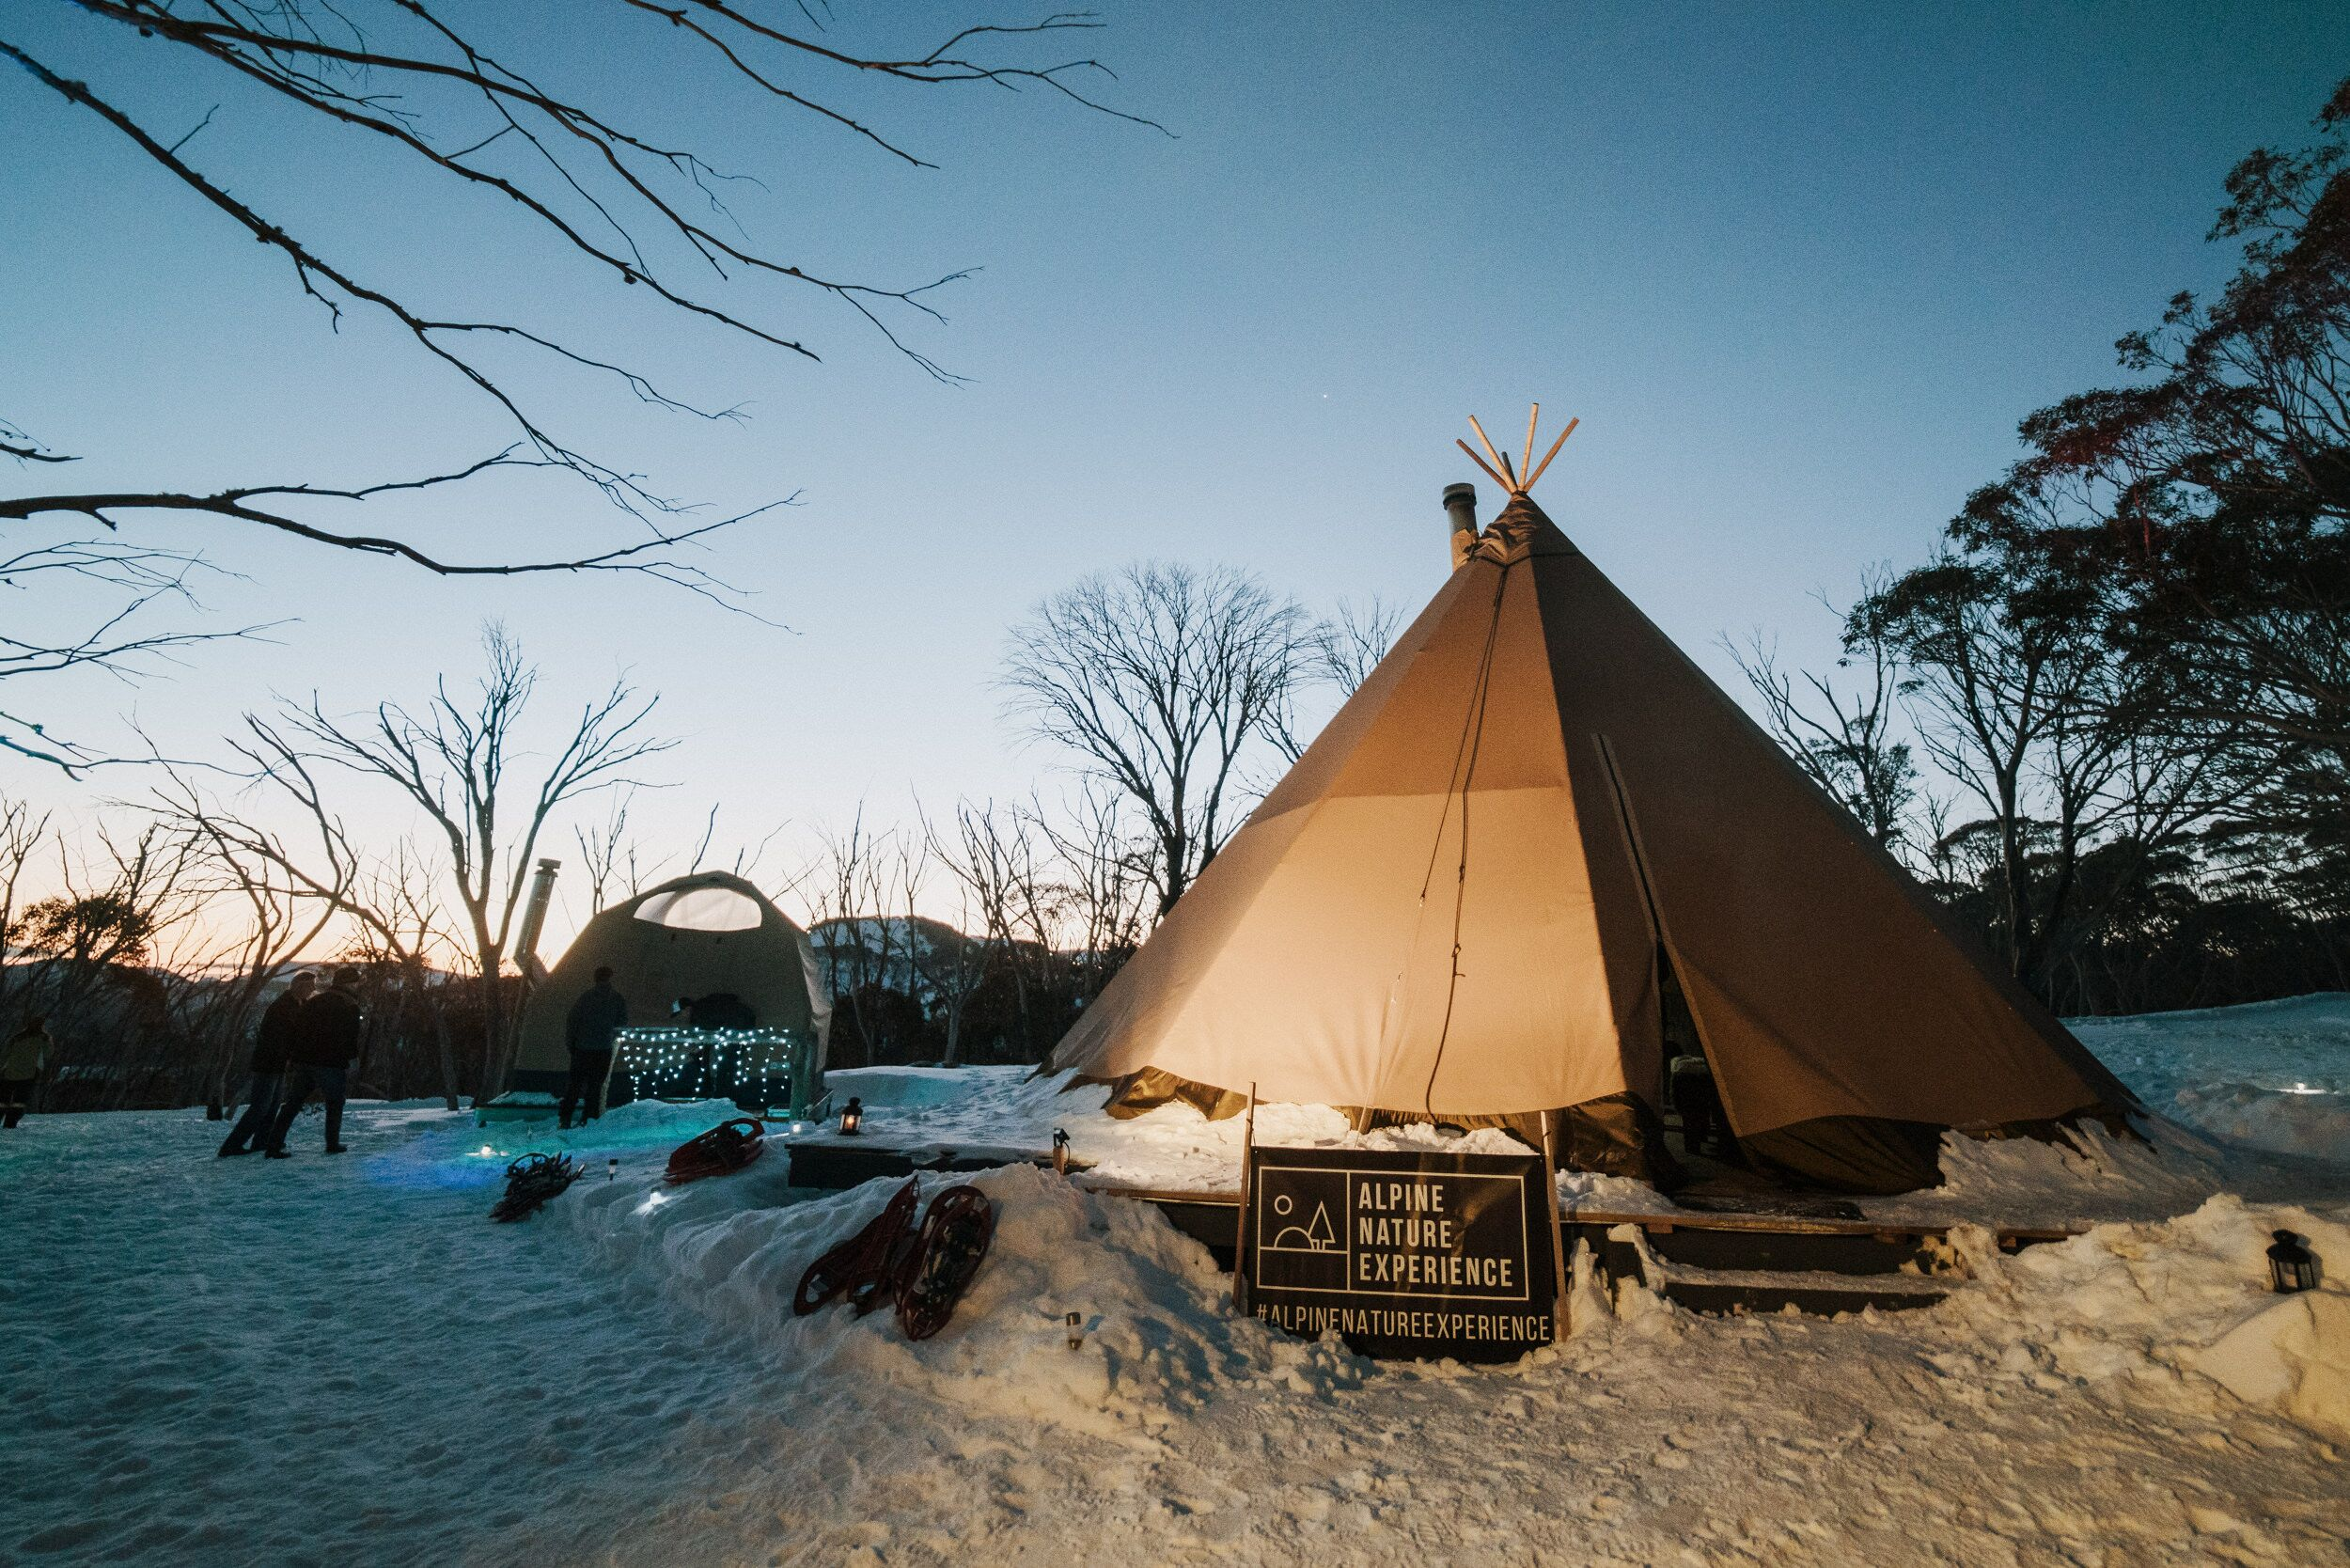 Say Cheese: Foodie Experience Launches at Australia's First Igloo Village